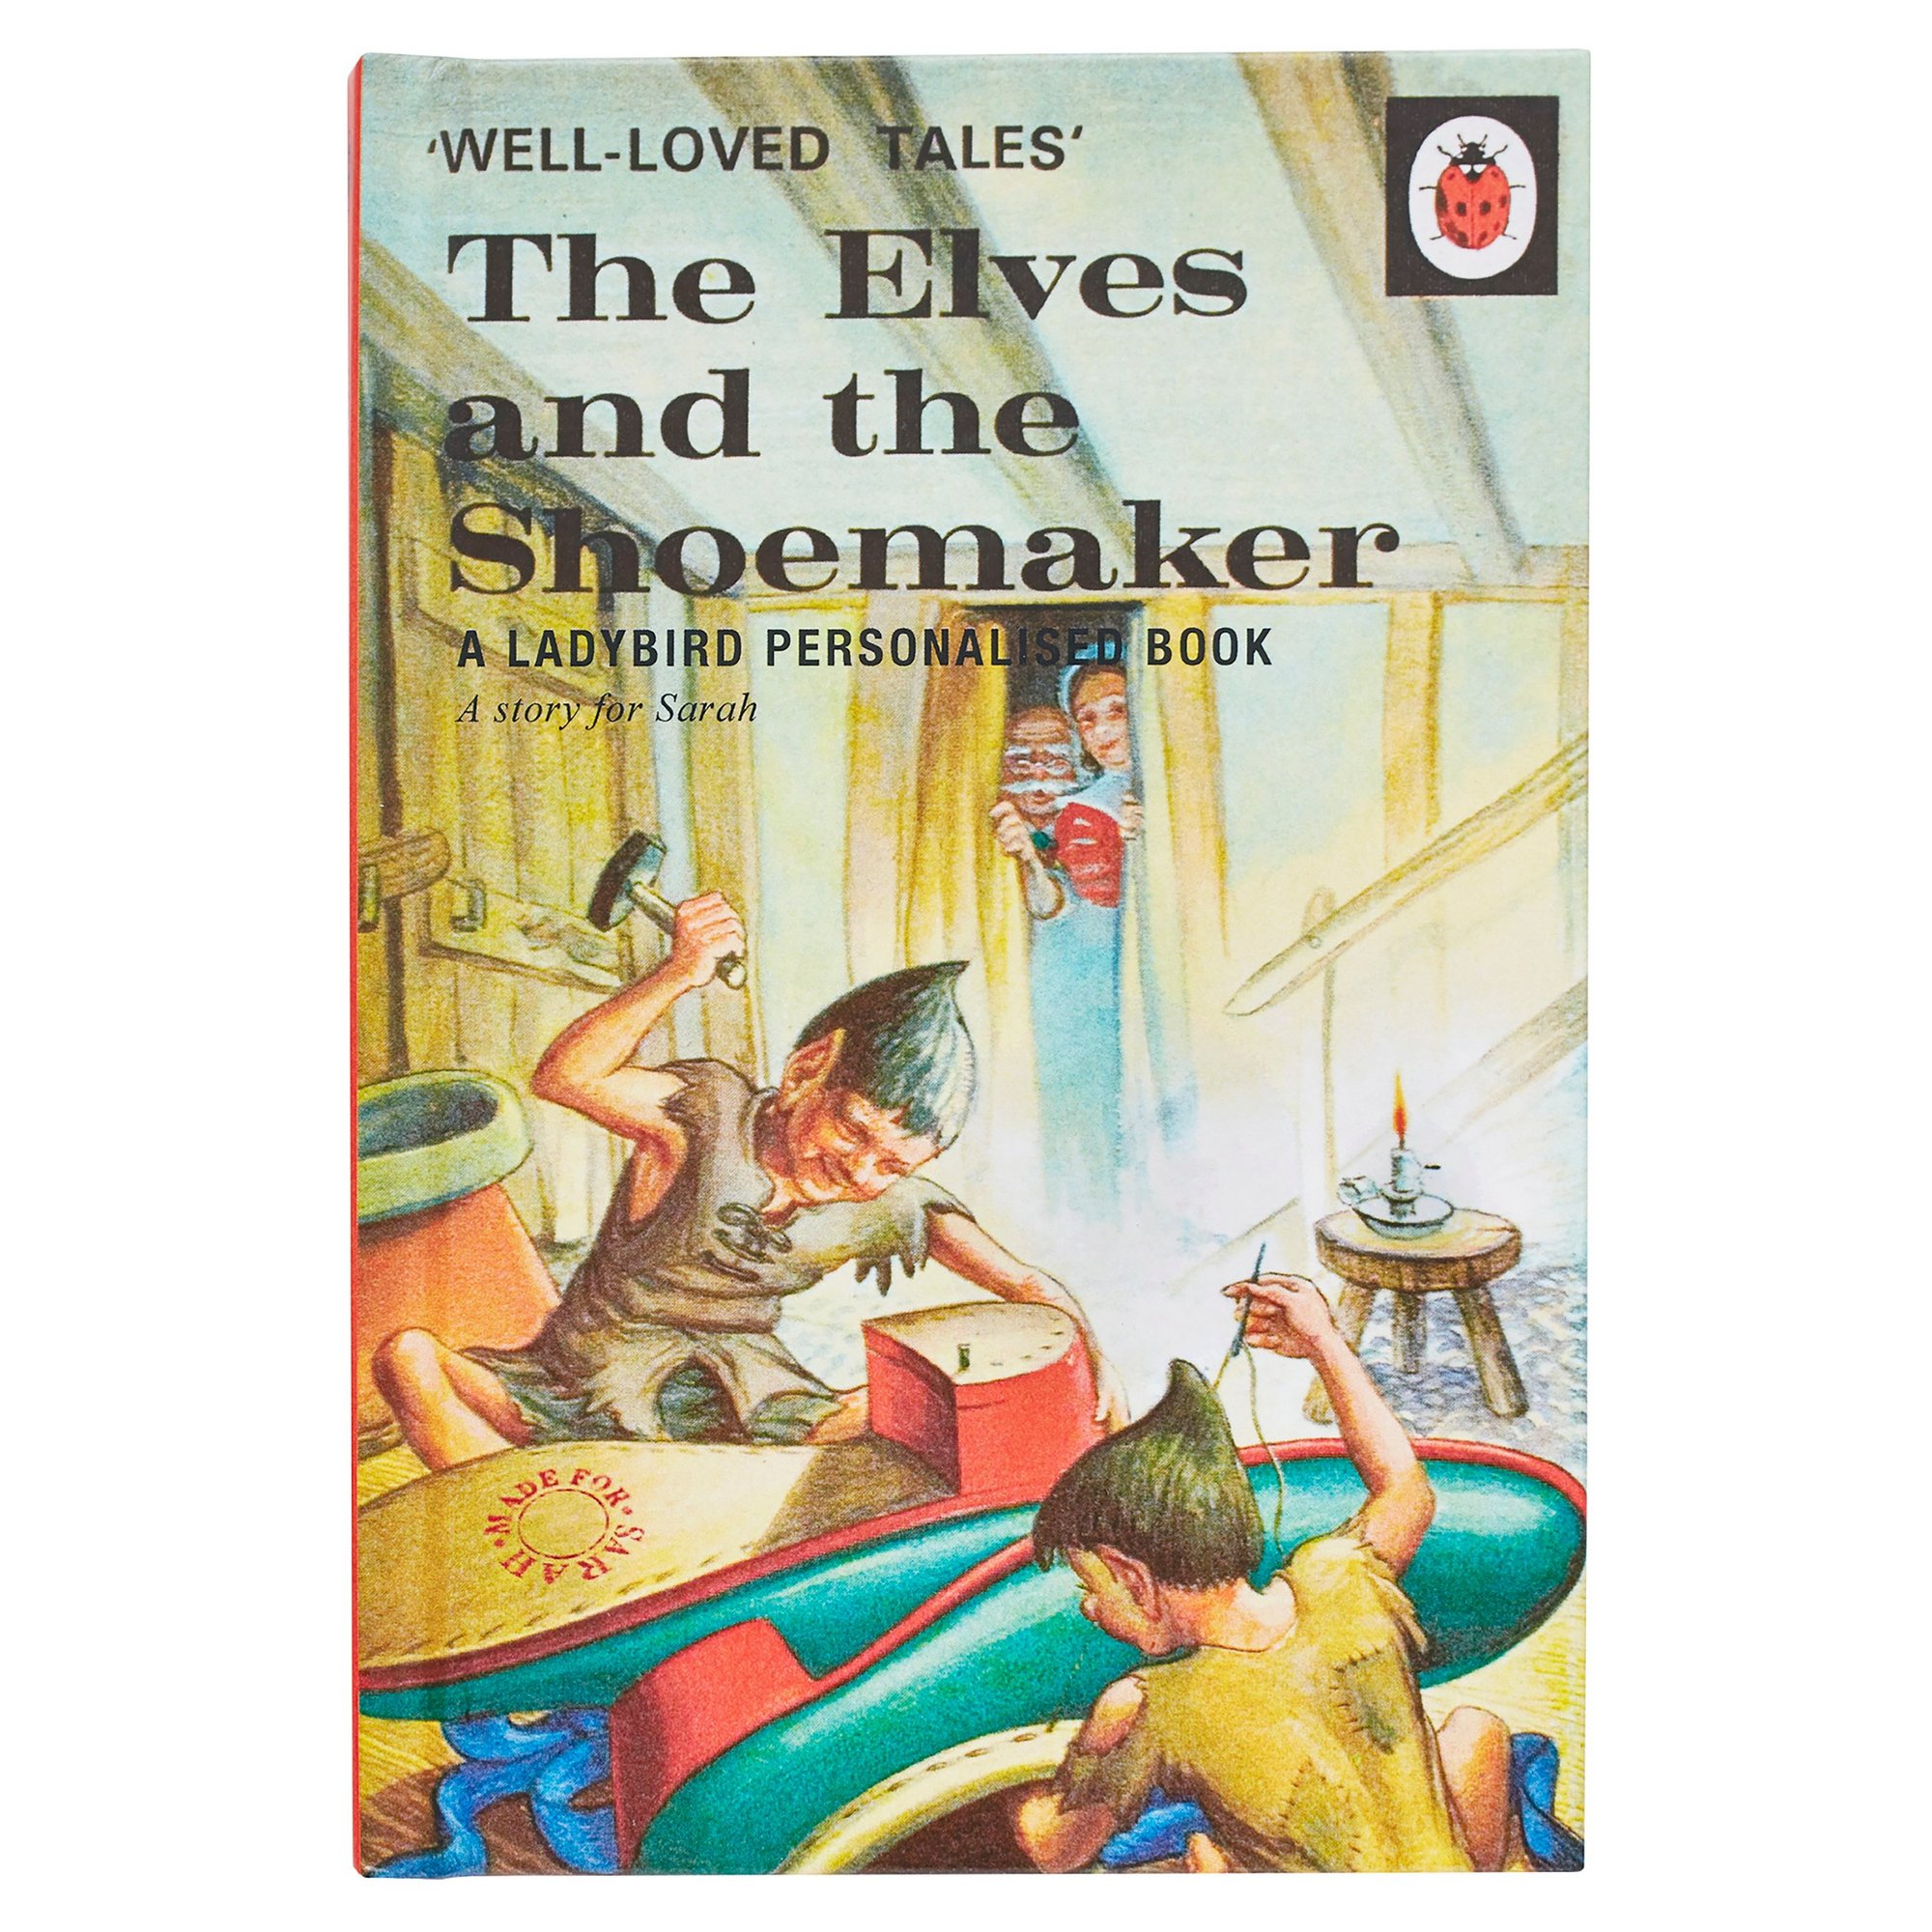 Image of Personalised Ladybird Book: The Elves and the Shoemaker